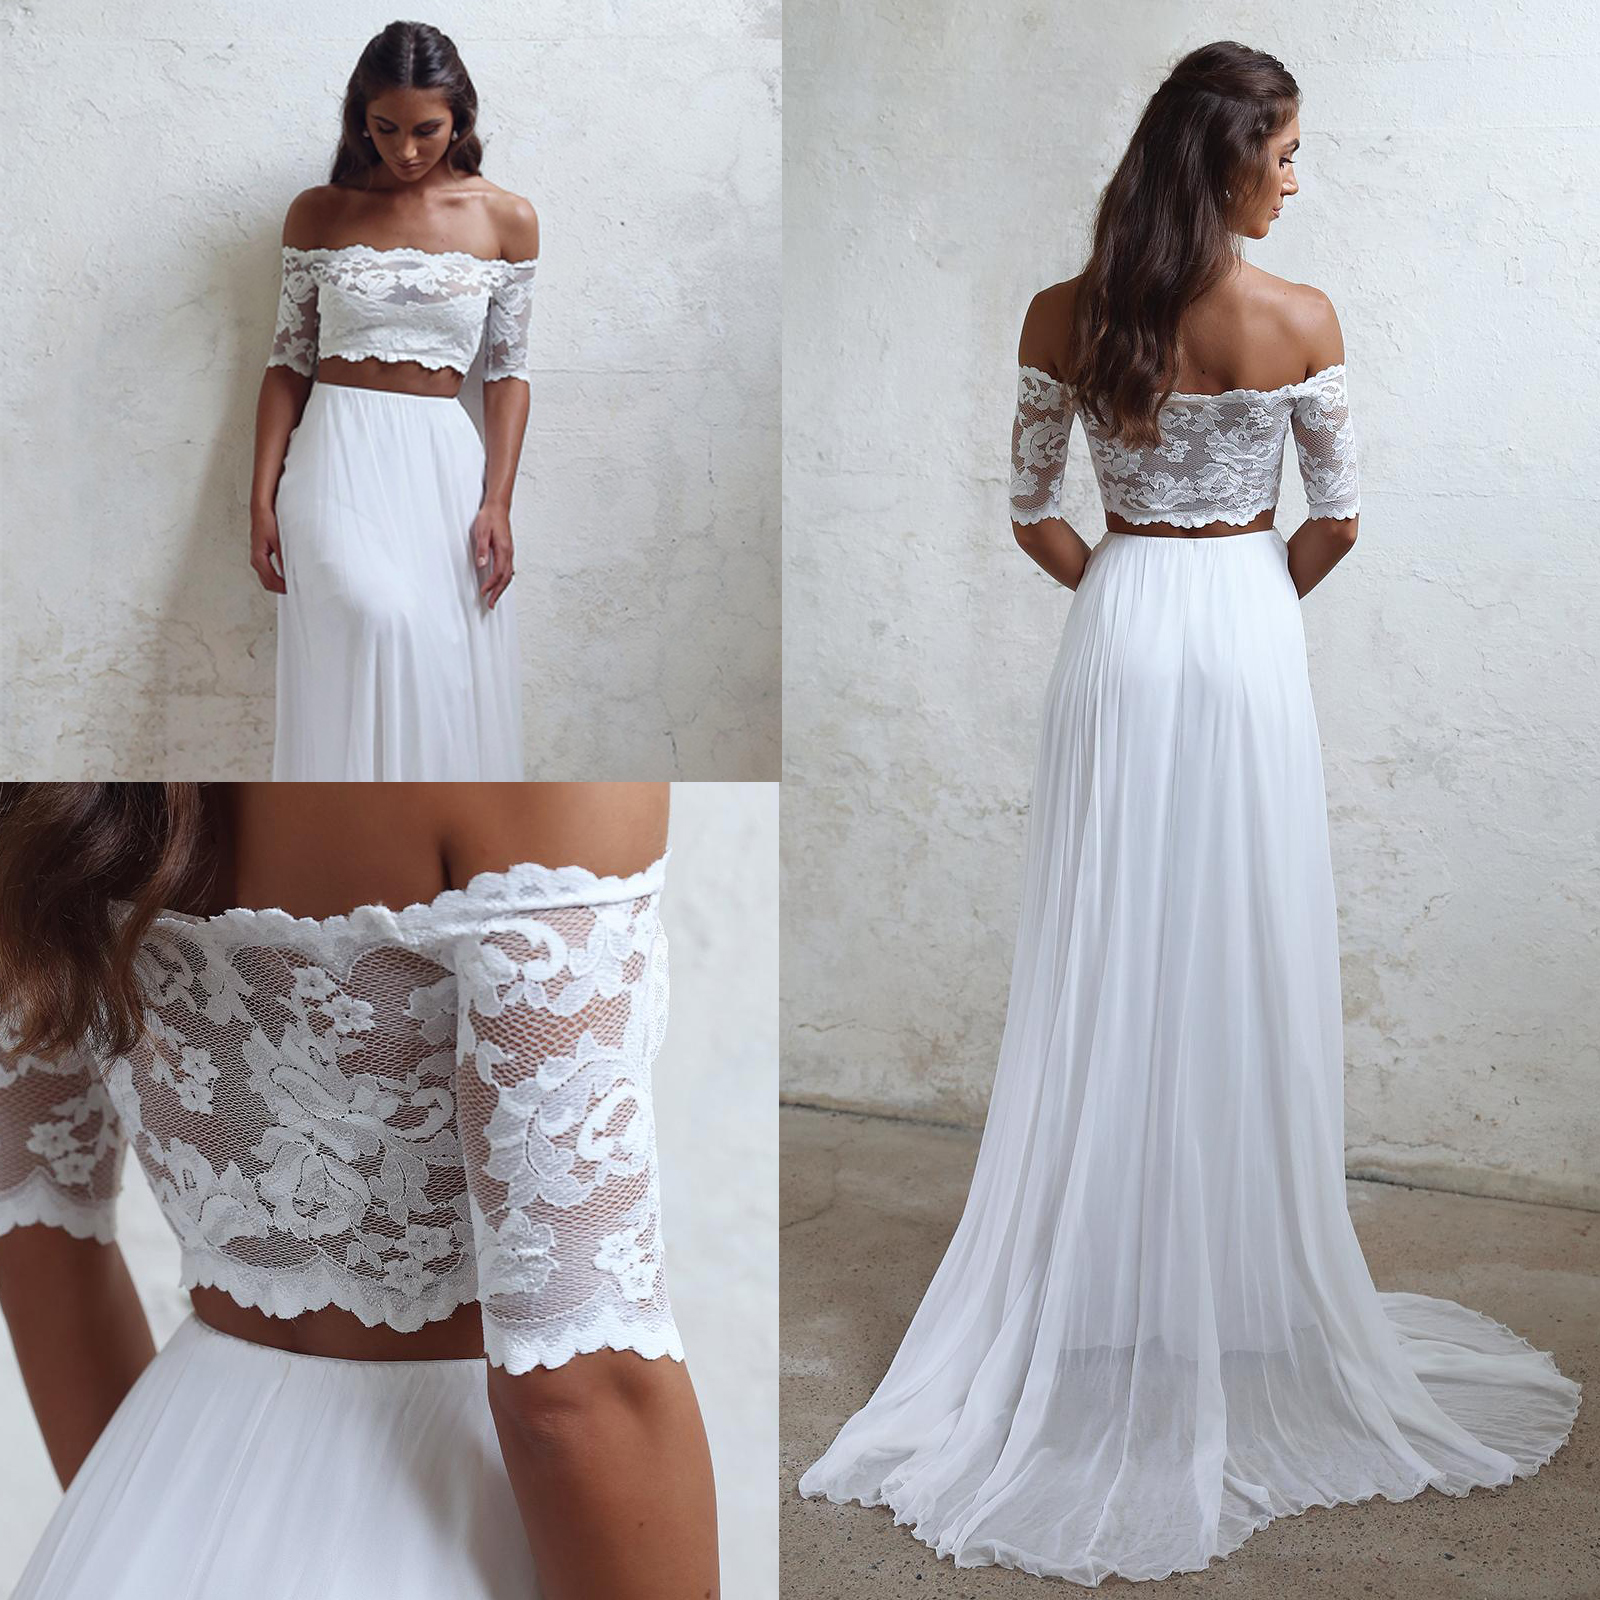 Wedding Gown Tops: Ivory Chiffon Wedding Dress Two Piece Lace Top Off